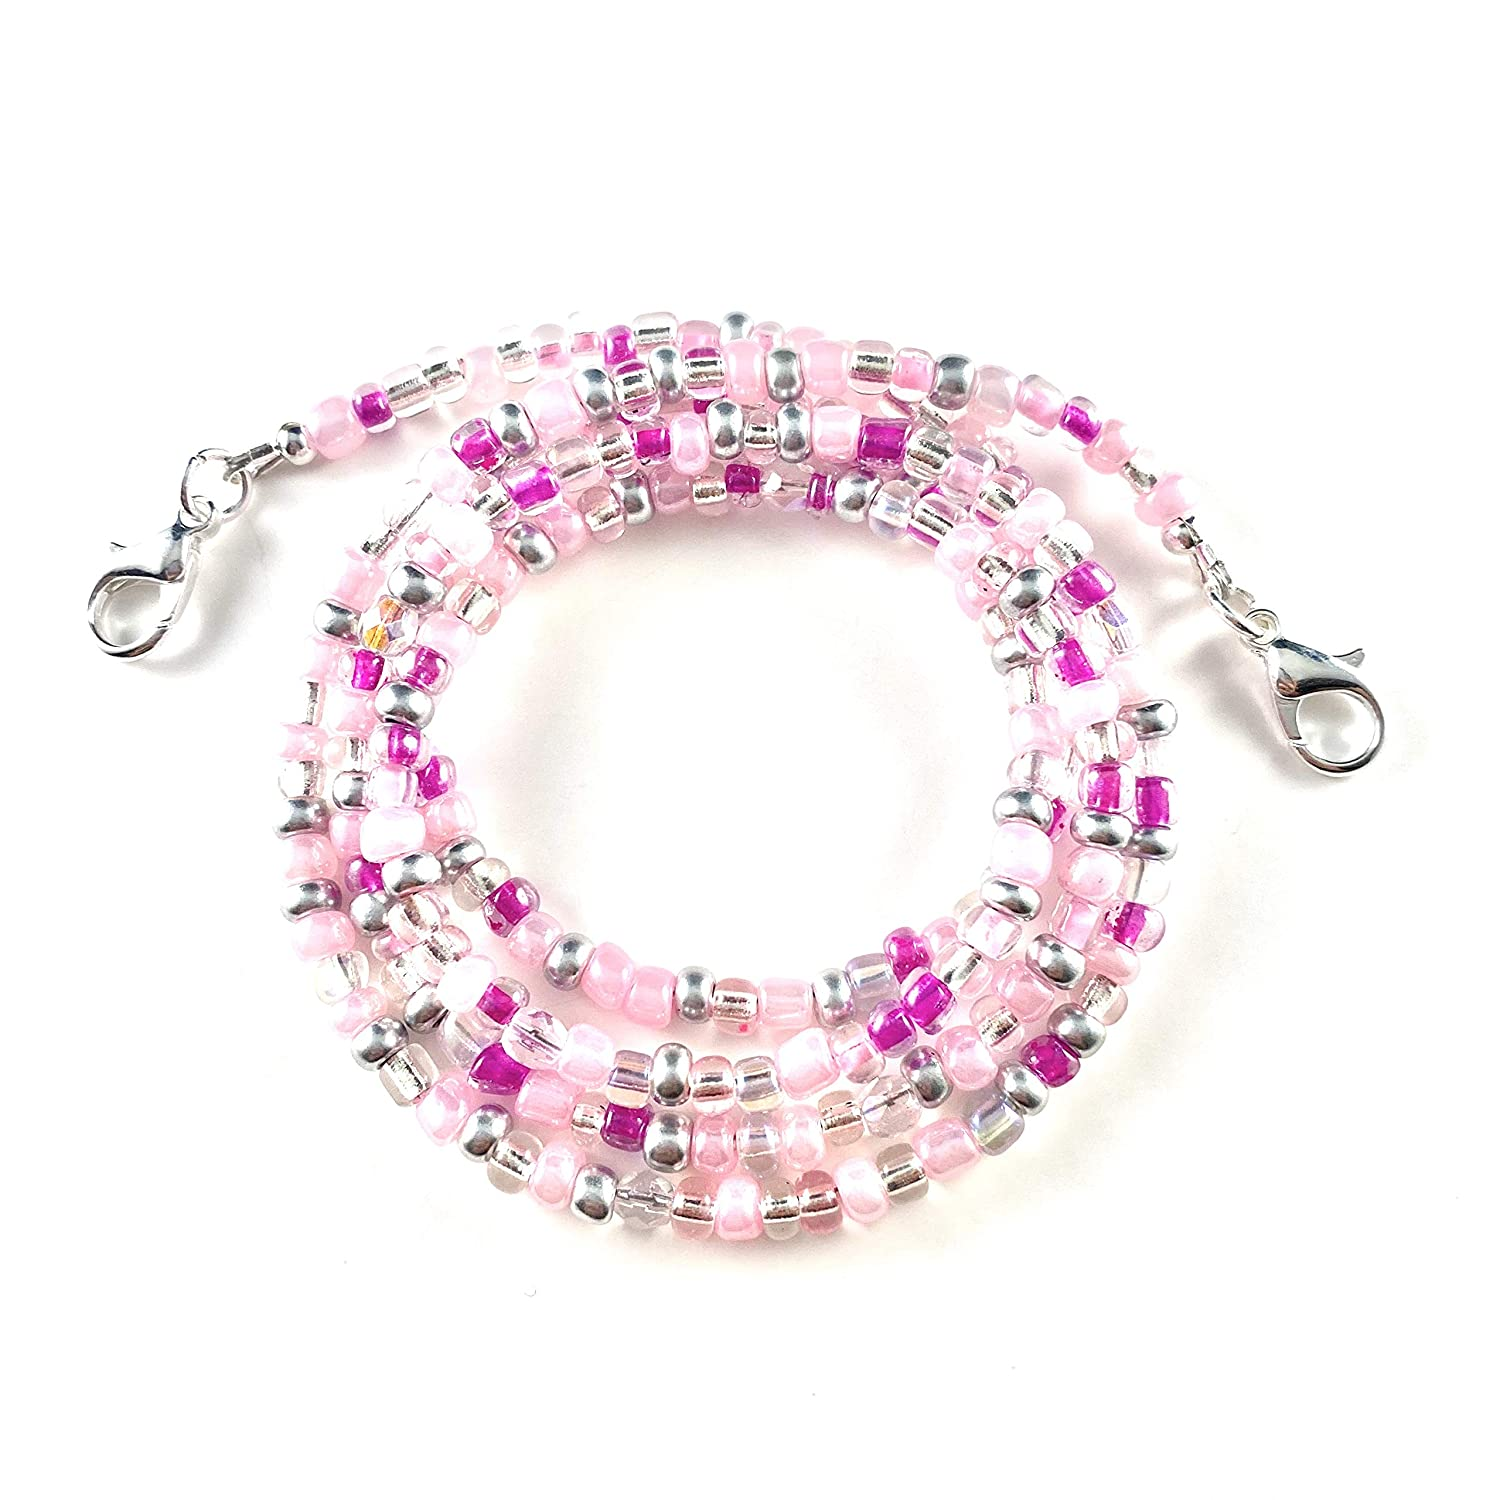 Mask Accessory Mask Lanyard Pink and Silver Mask Leash BEADING ARTISTRY Beaded Mask Holder Handmade in the USA 28 Inches Mask Strap